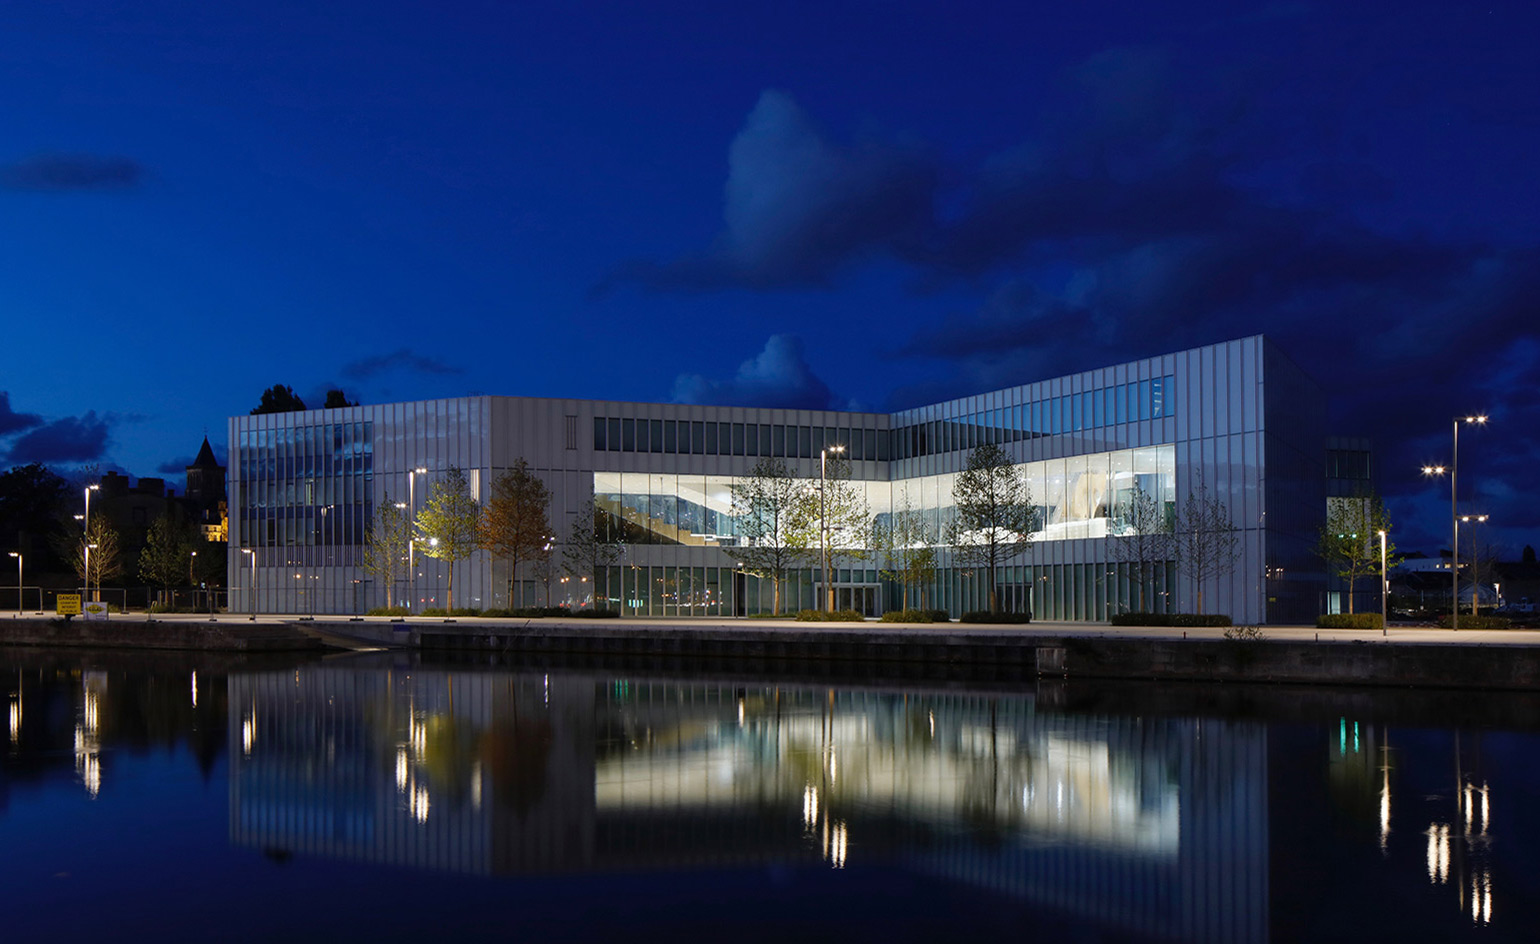 Cabinet D Architecte Caen loan ranger: oma's first 2017 project is a public library